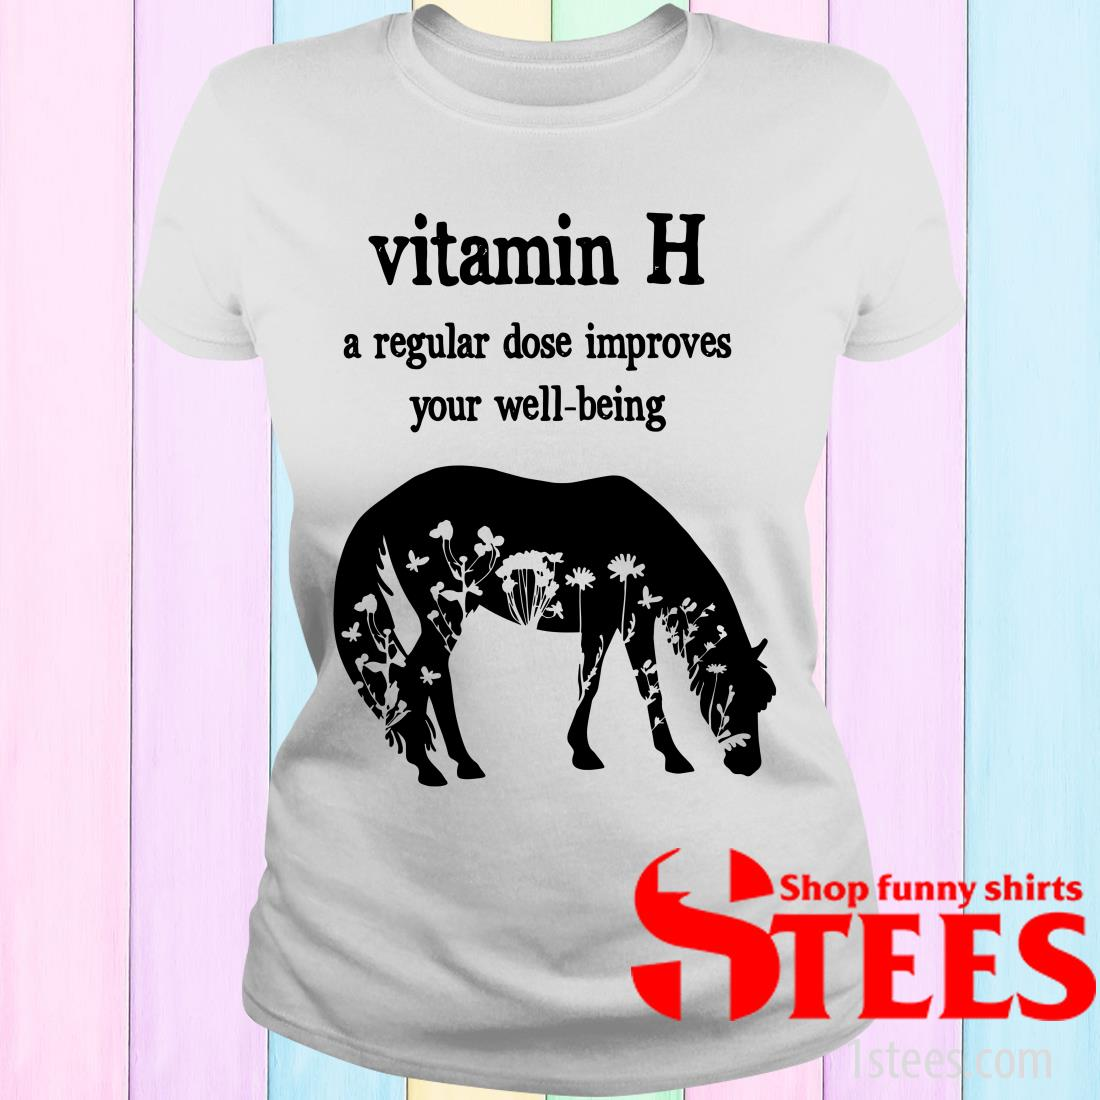 Vitamin H A Regular Dose Improves Your Well-Being Horse Women's T-Shirt